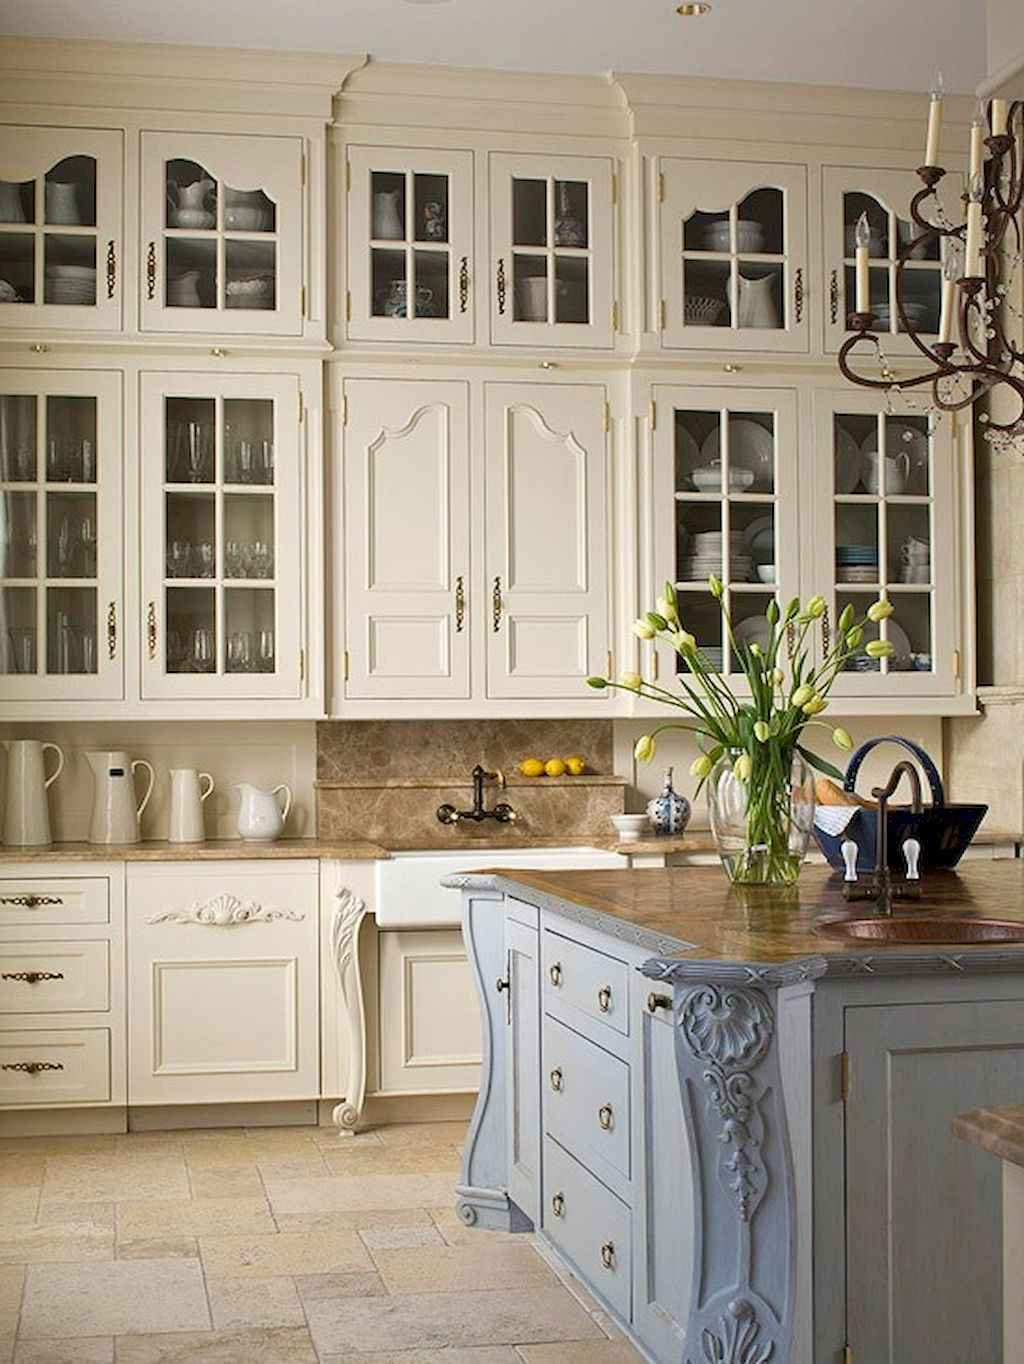 Incredible french country kitchen design ideas (14)